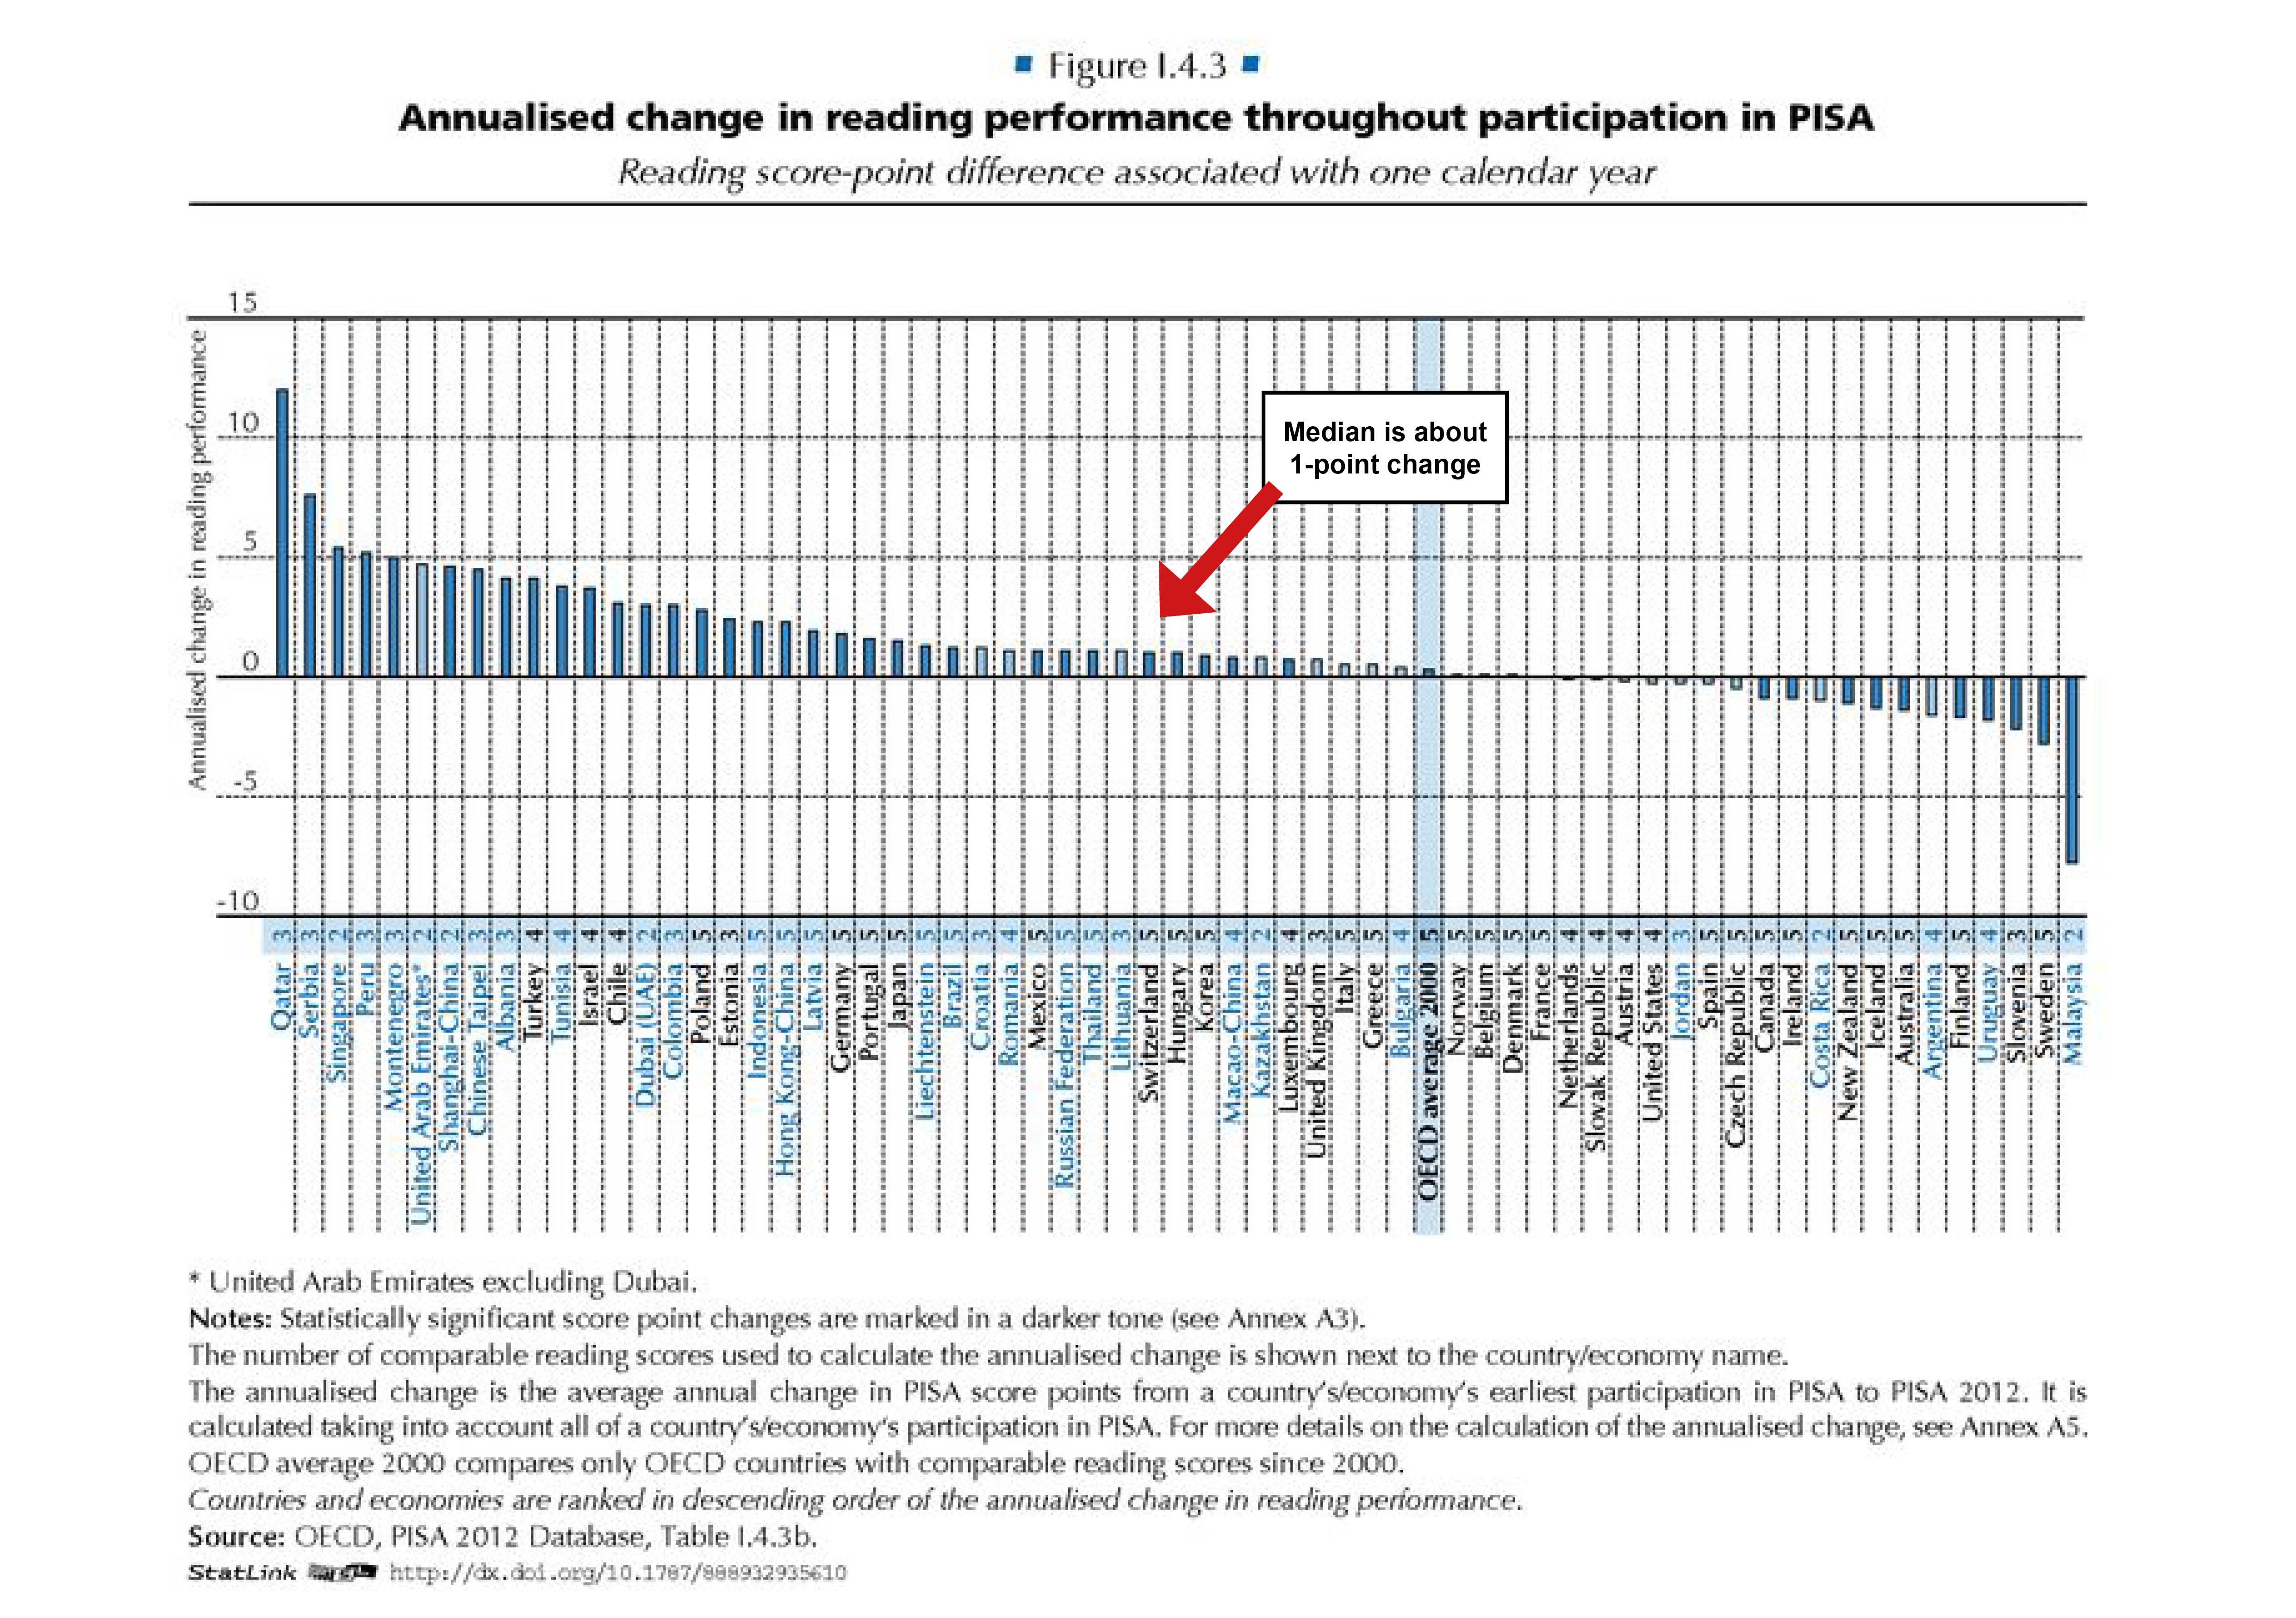 Chart showing change in reading performance throughout PISA participation